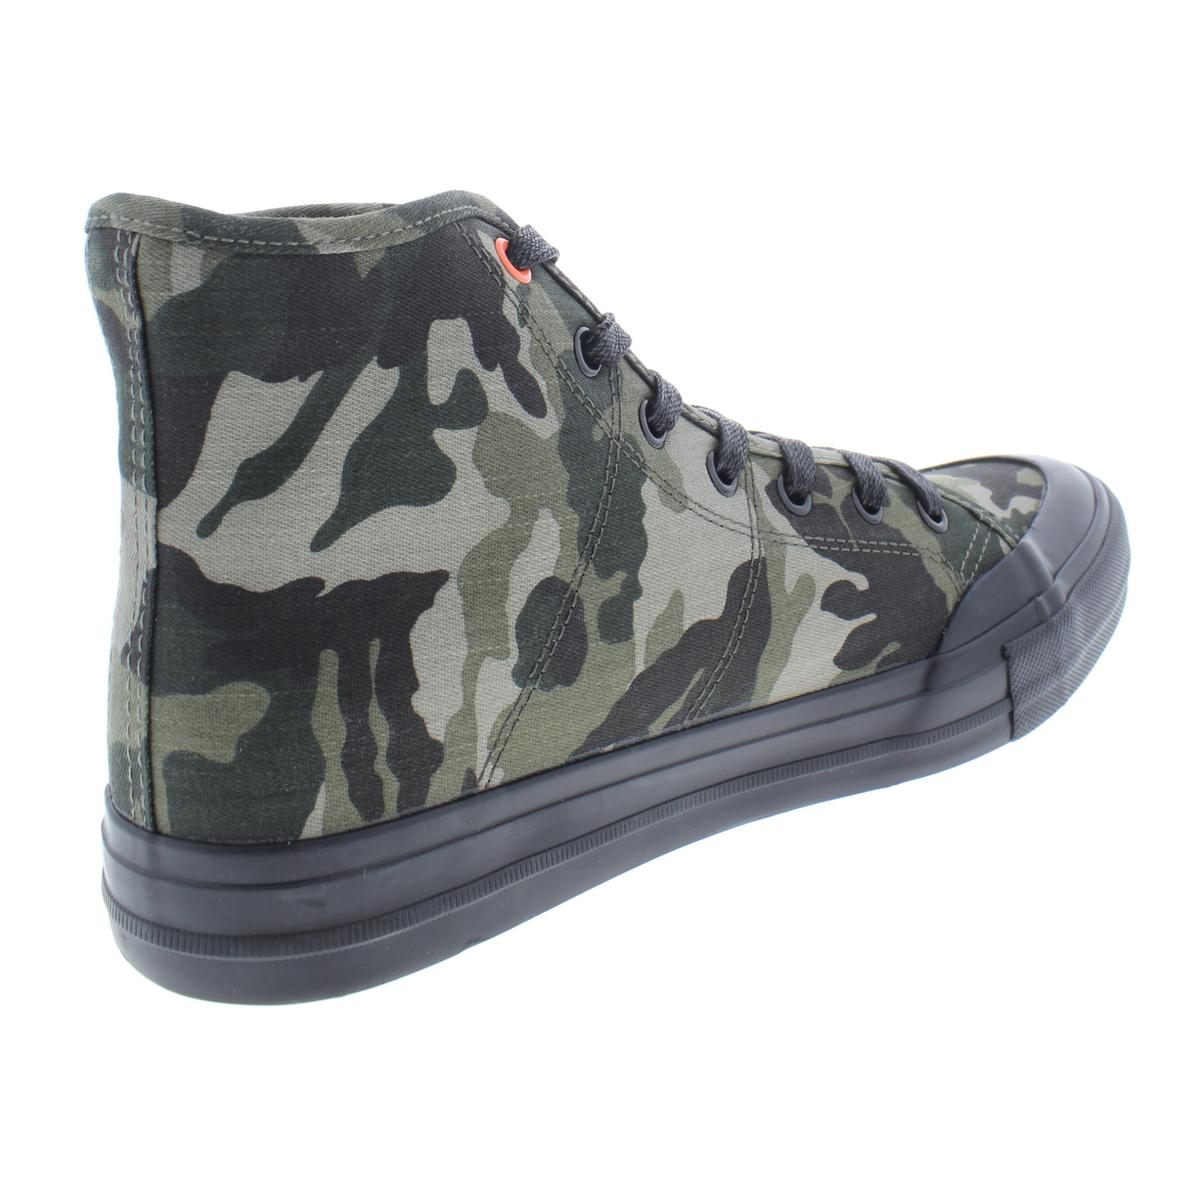 bc6f496df30 Steve Madden Mens Spike Green Casual SNEAKERS Shoes 11 Medium (d ...